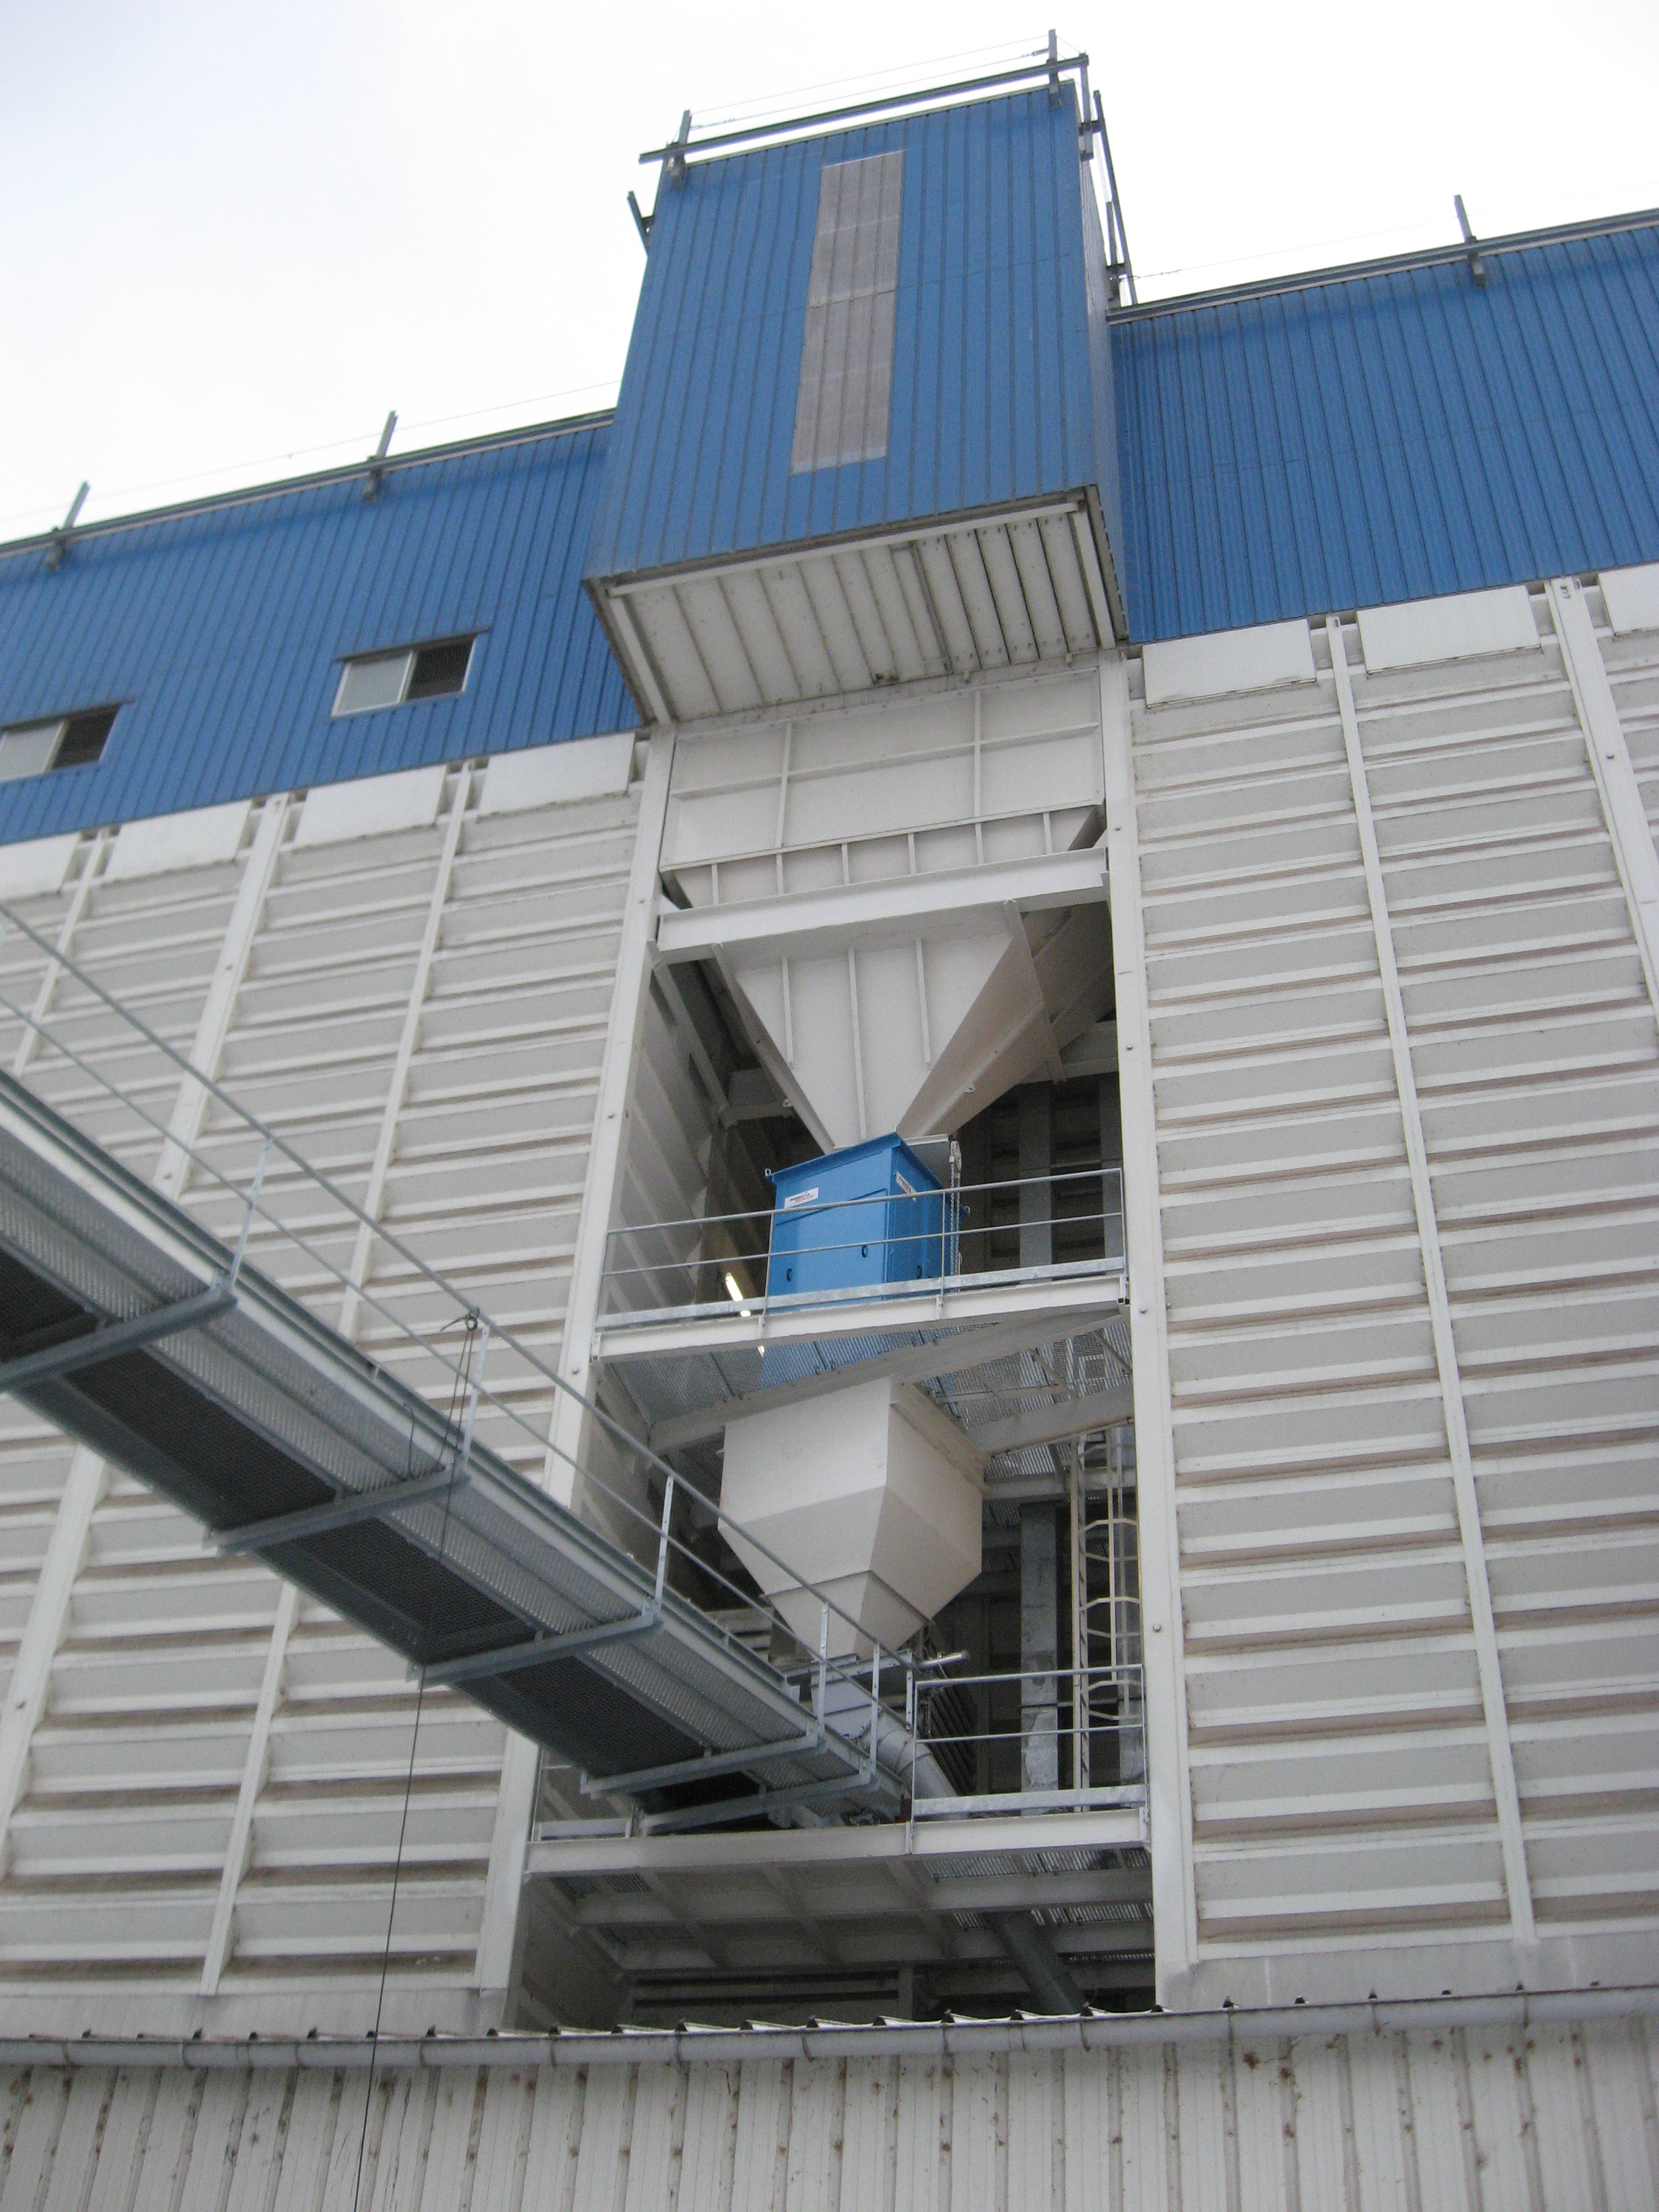 in-process weigher